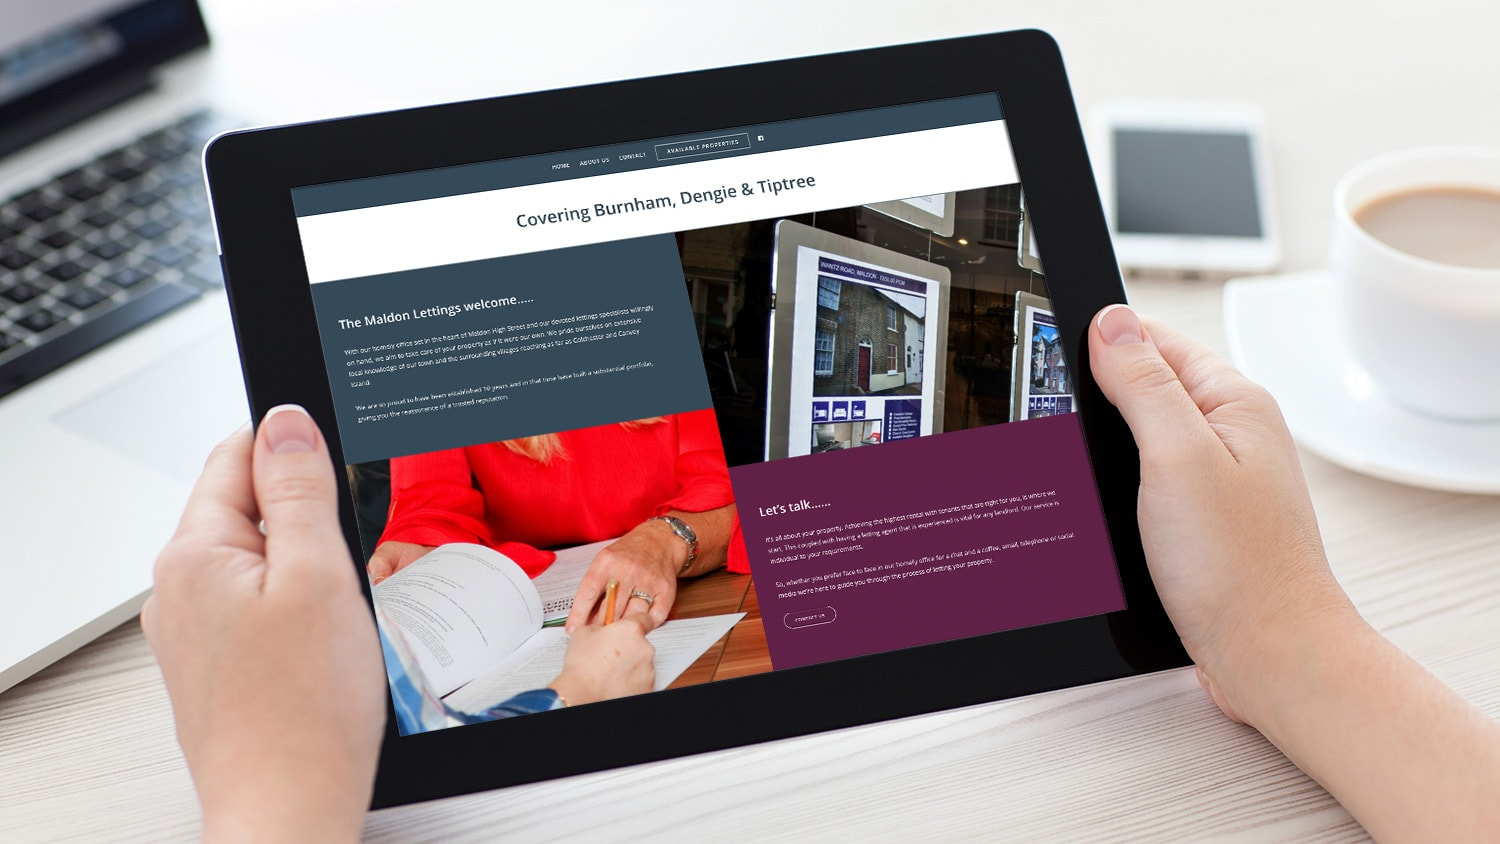 A person holding a tablet viewing the responsive Maldon Lettings website